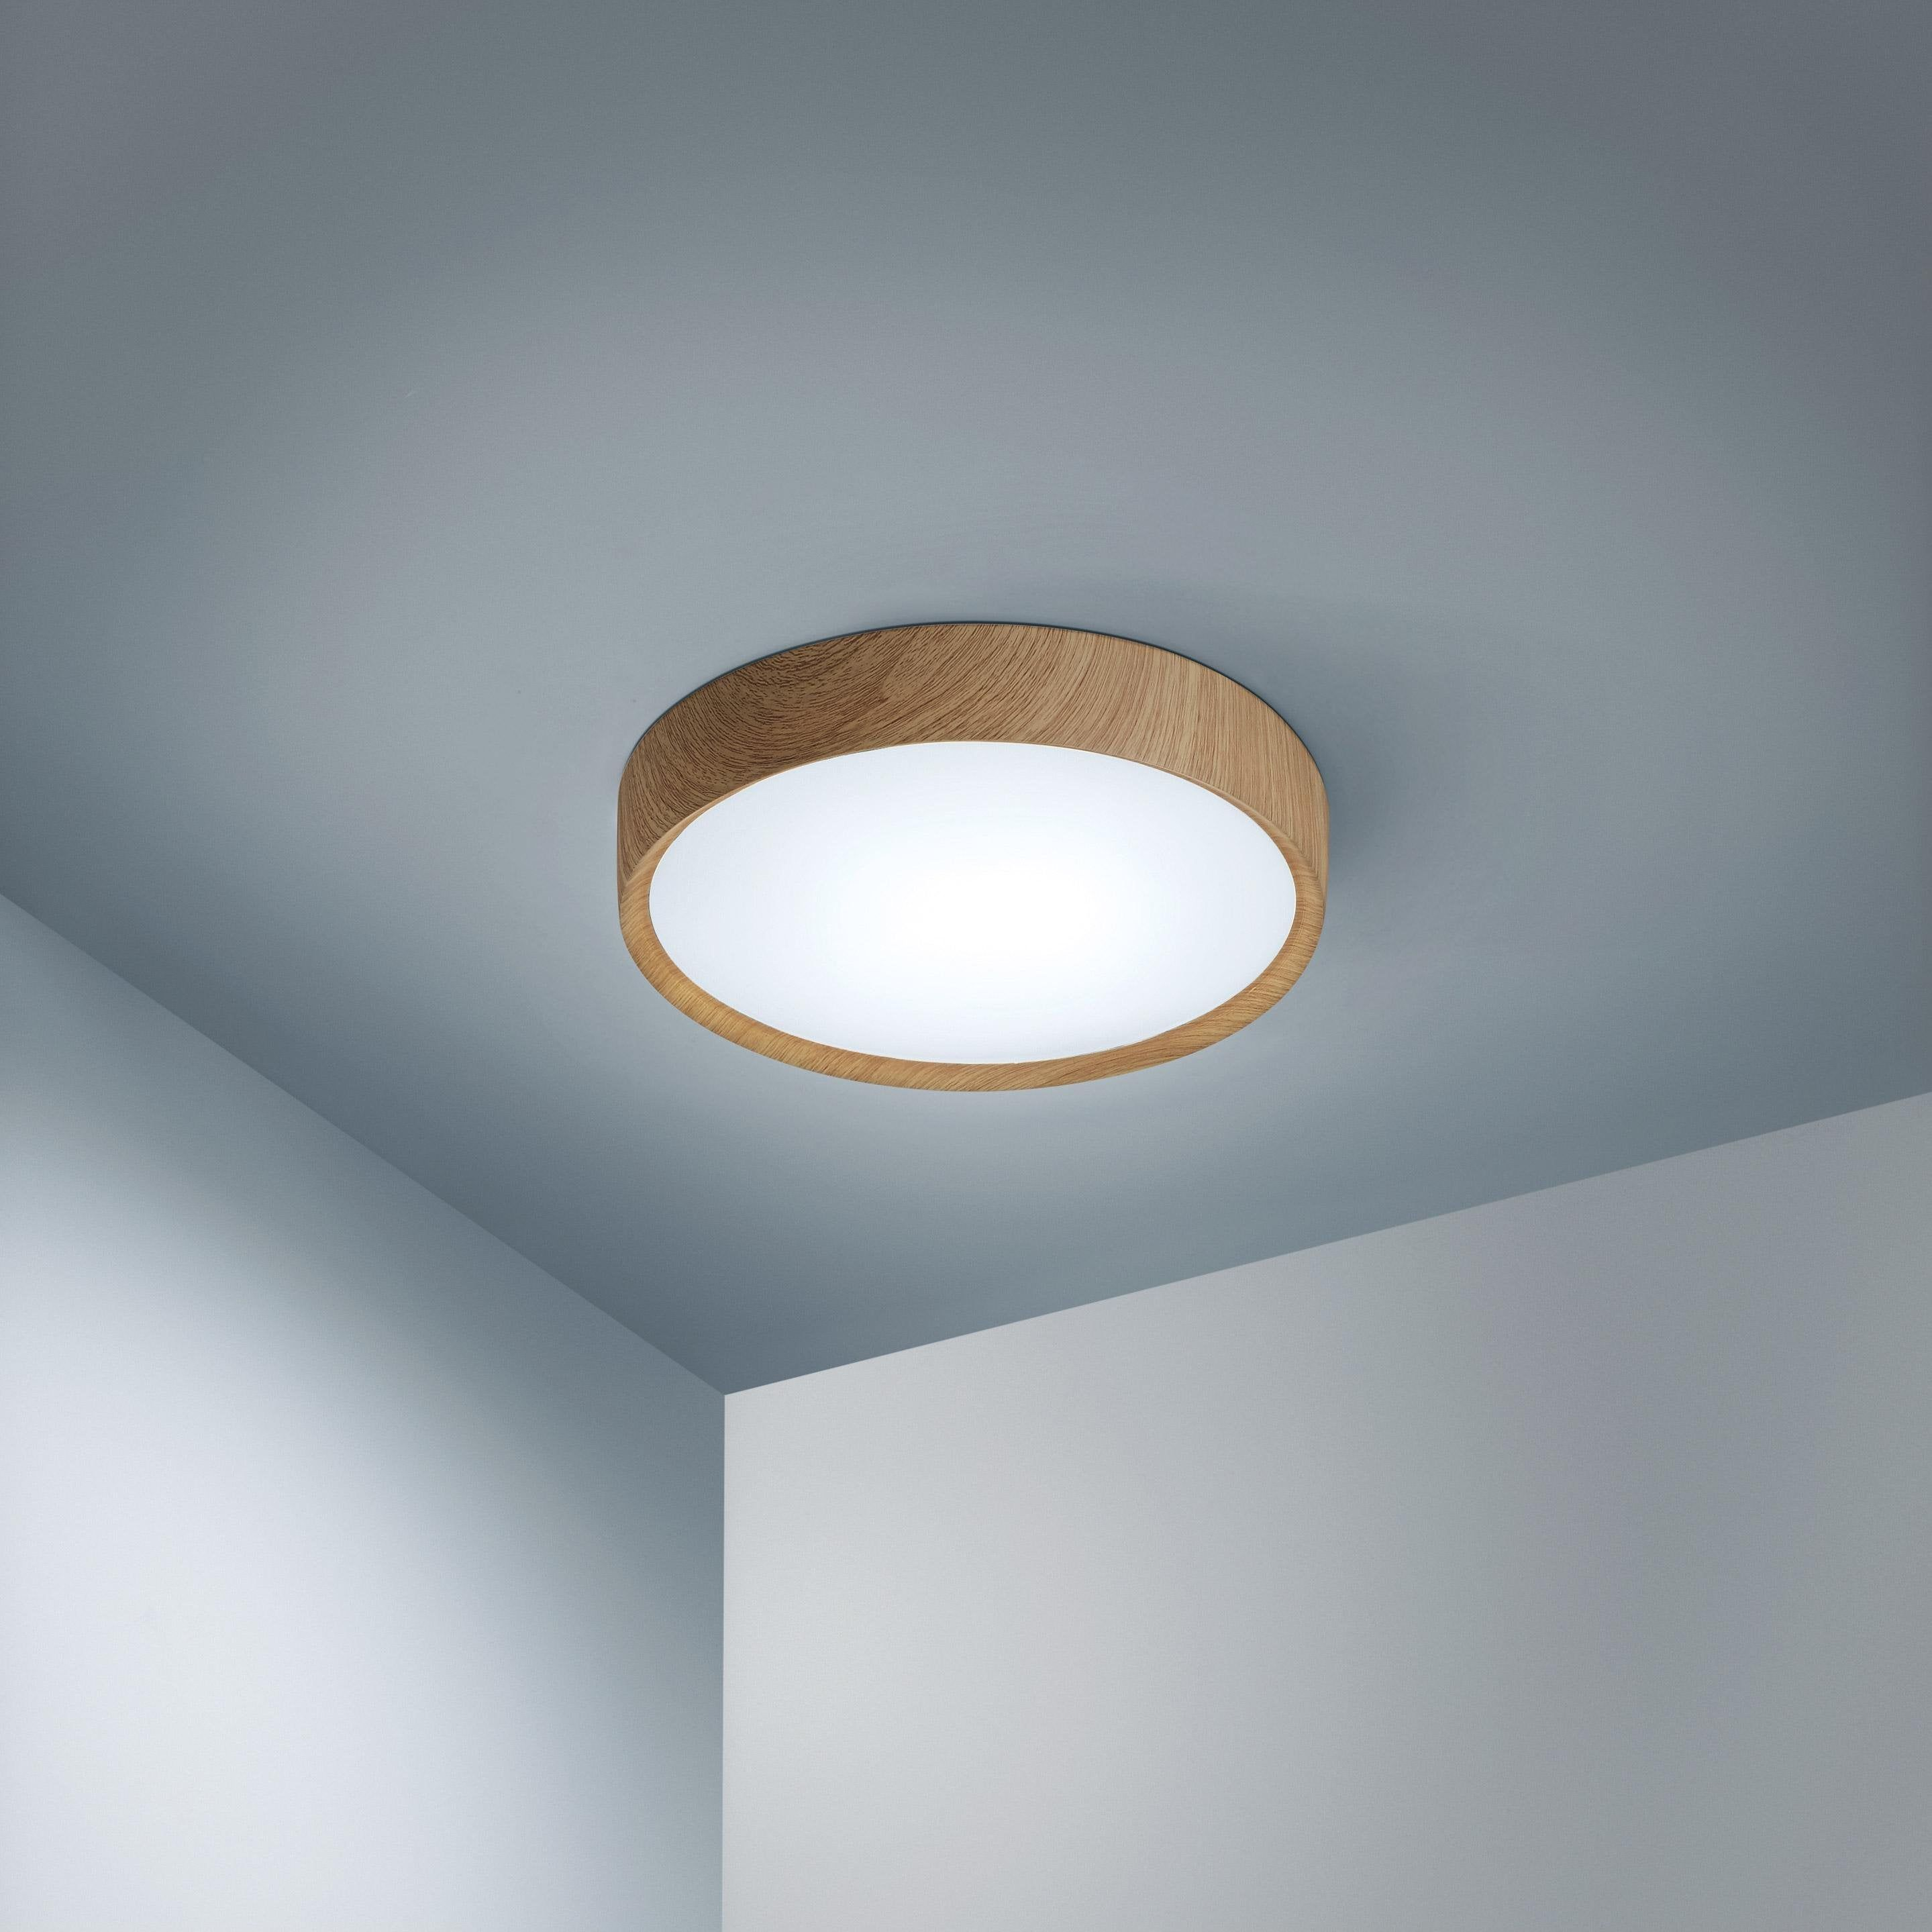 Plafonnier Scandinave Acrylique Bois Led Integree Lumiplus